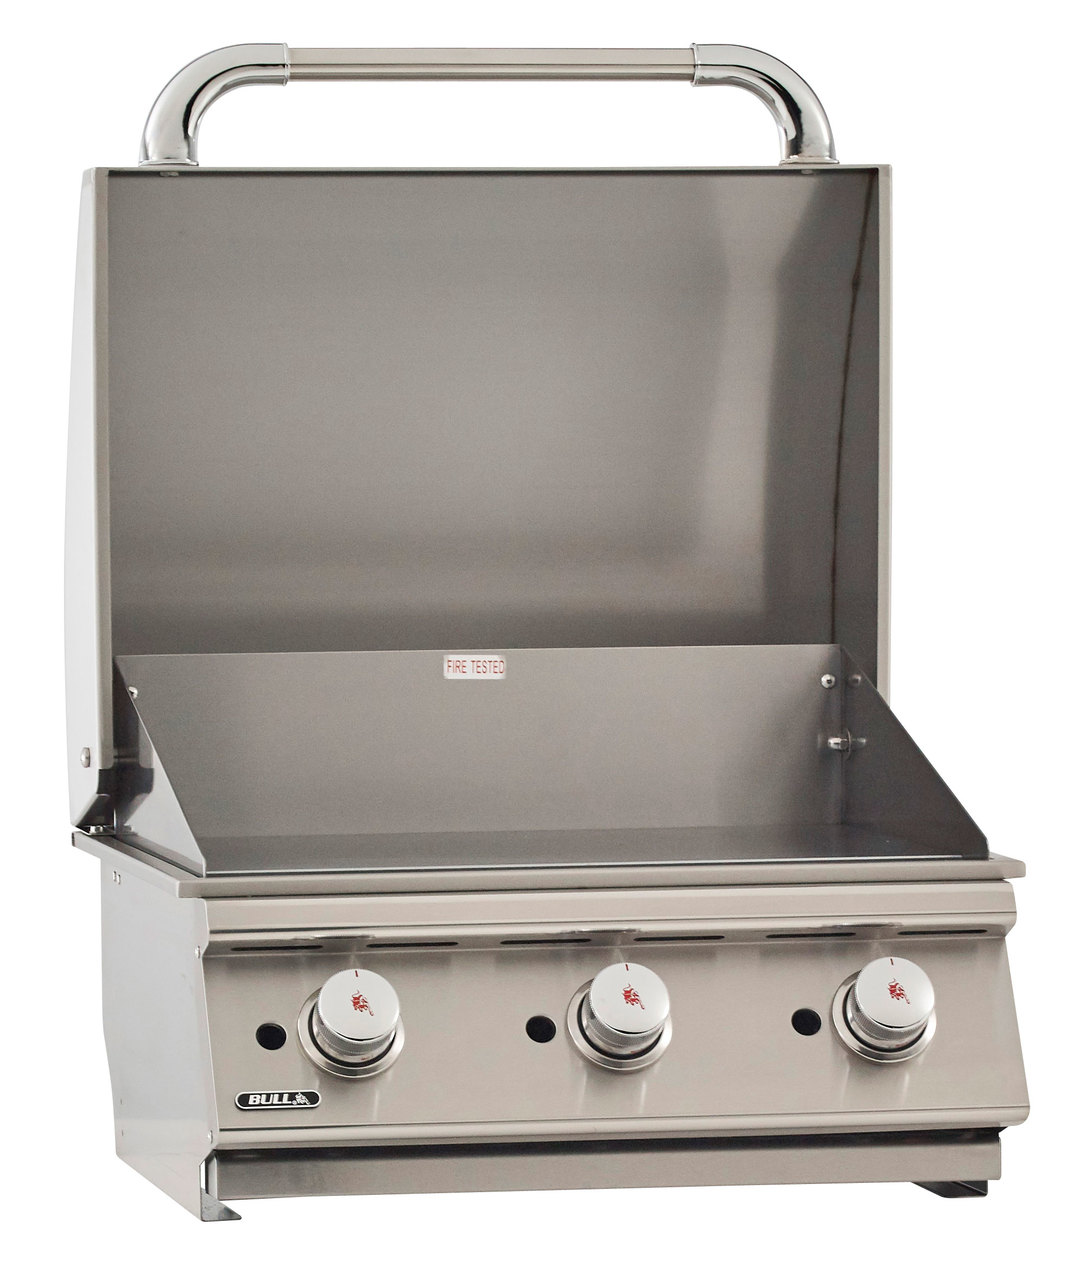 Grill 24 24 Commercial Style Griddle